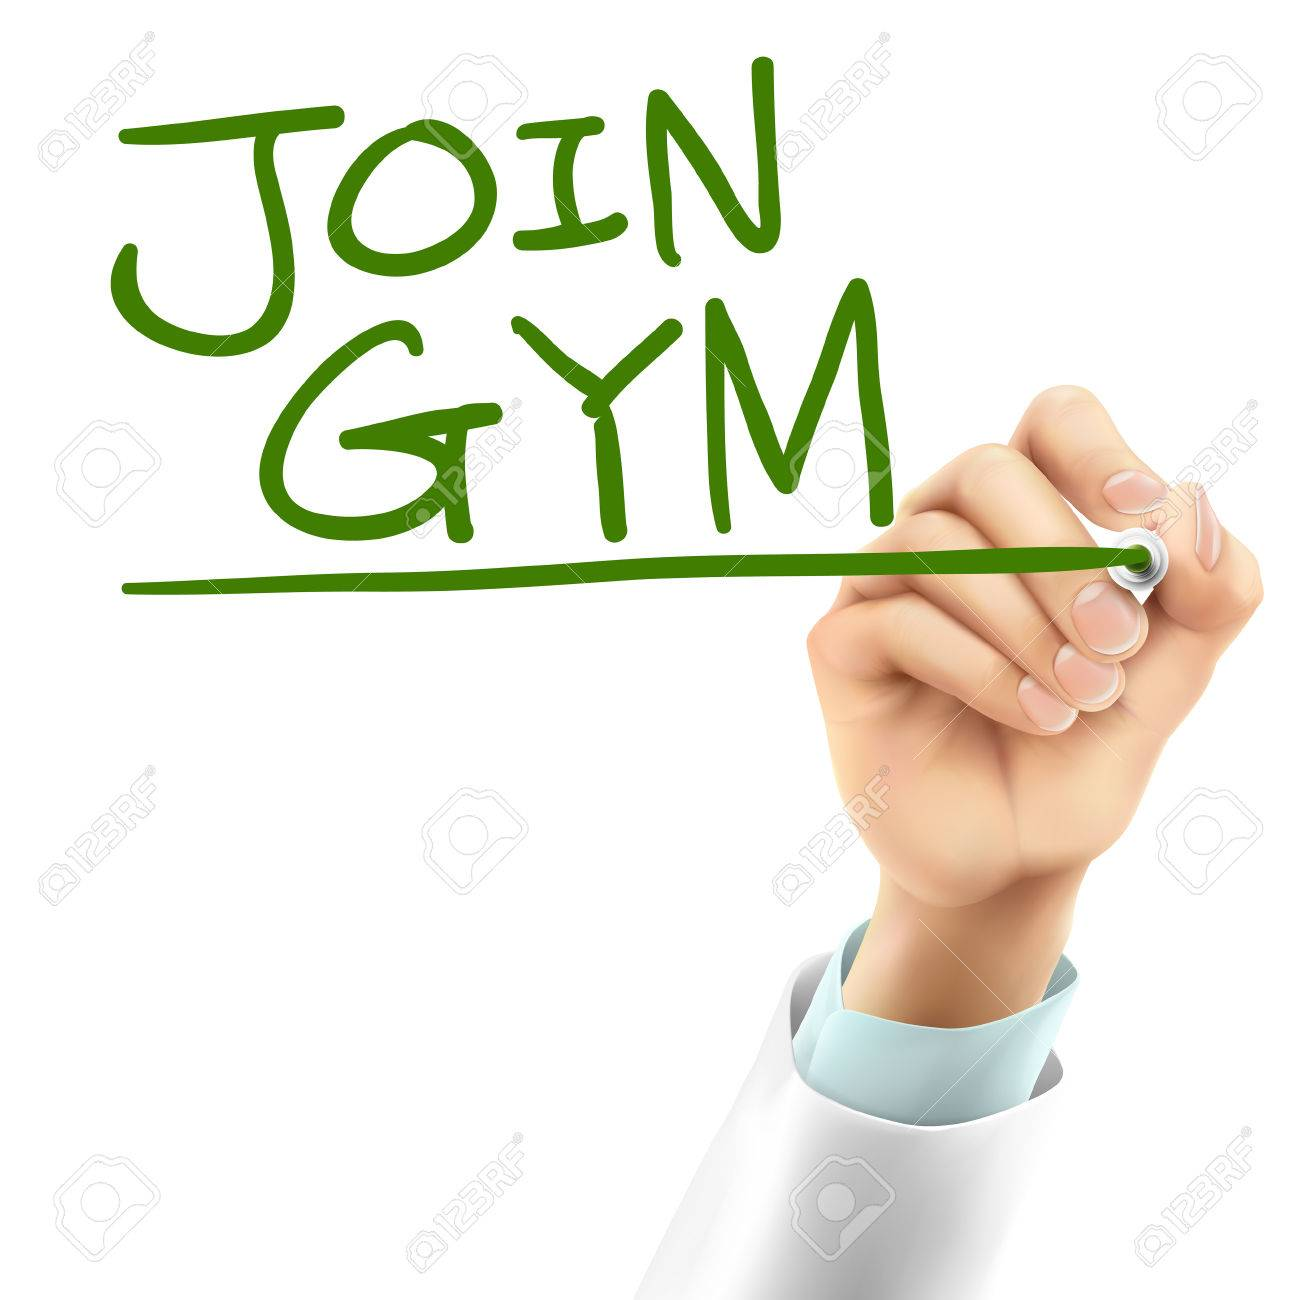 Image result for JOIN A GYM